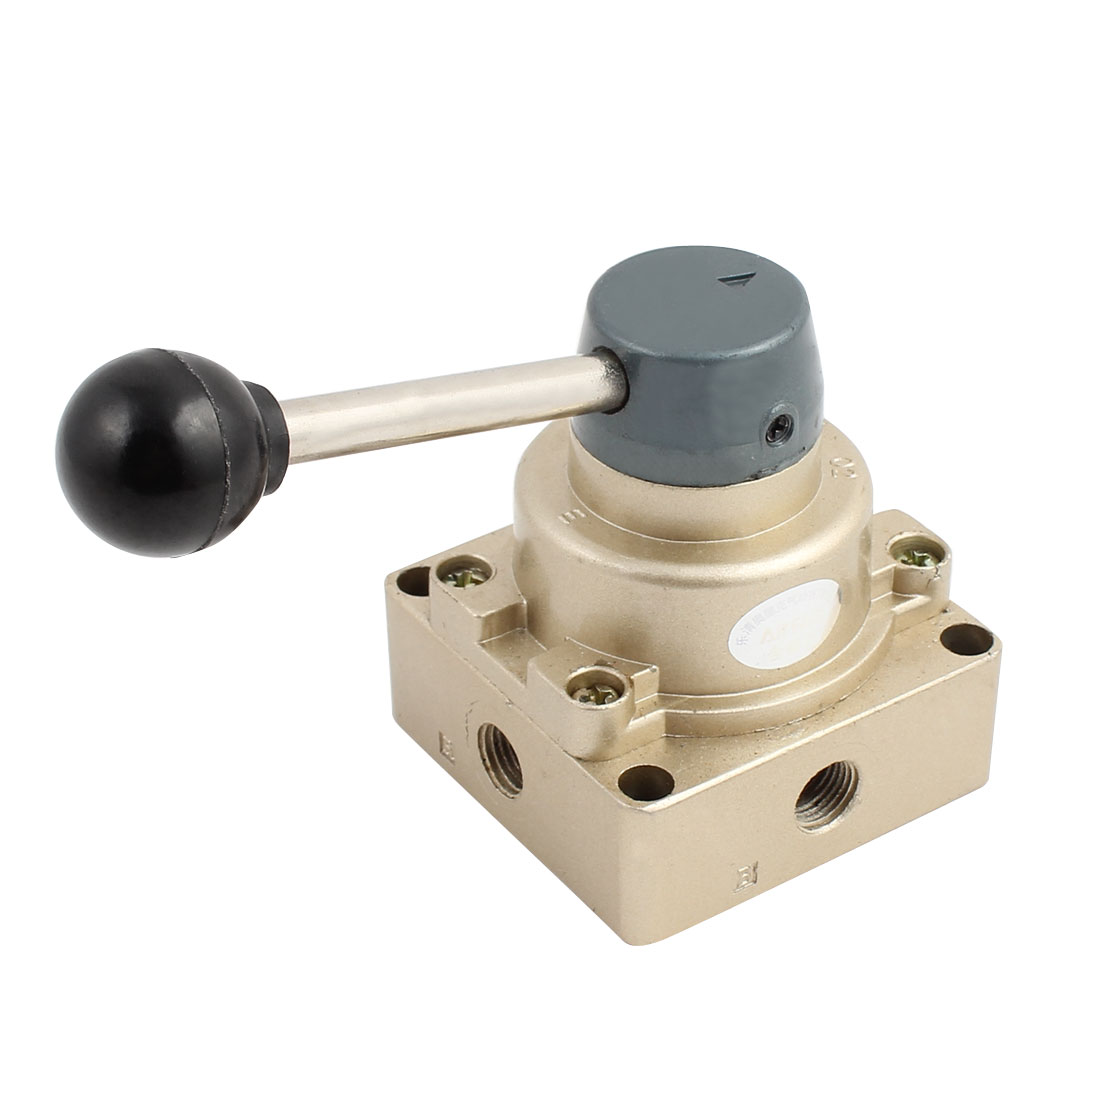 Manual Pneumatic 3 Positions 4 Ports 1/4BSP HV-02 Hand Operated Lever Air Valve